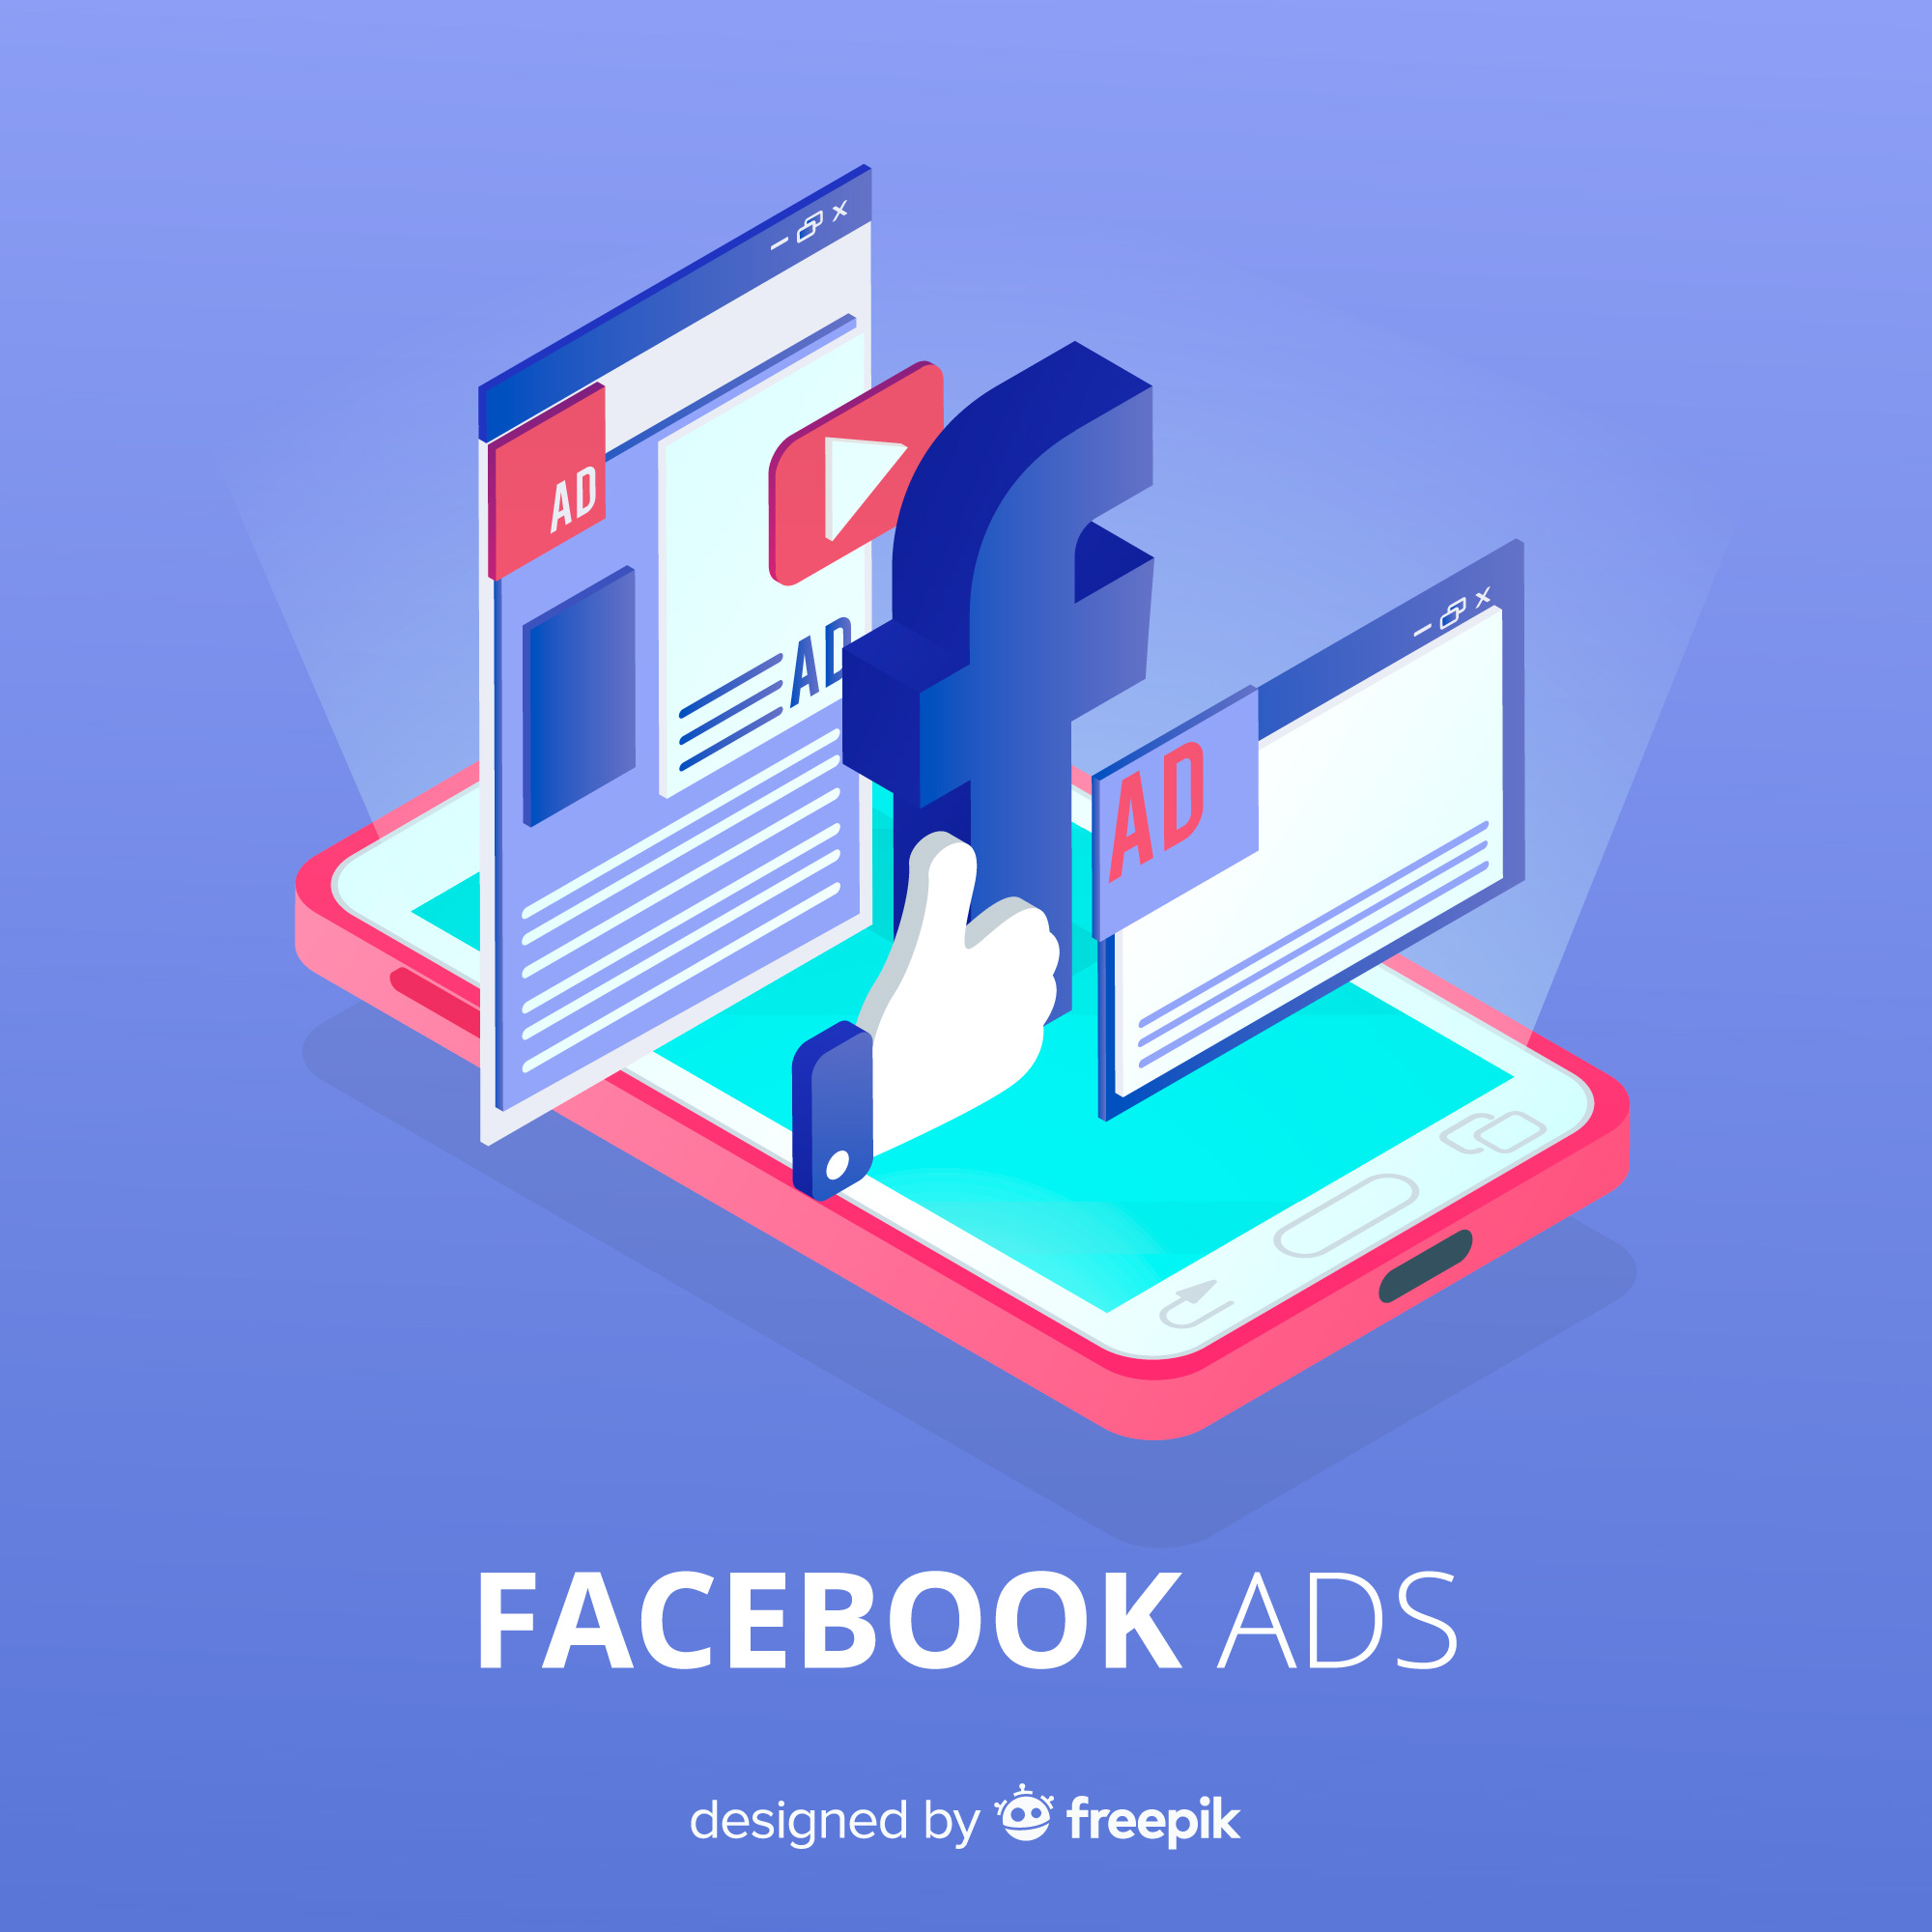 7 Quick Tips on How to Analyze Facebook Ads Smartphone Showing Facebook Ads Like Button